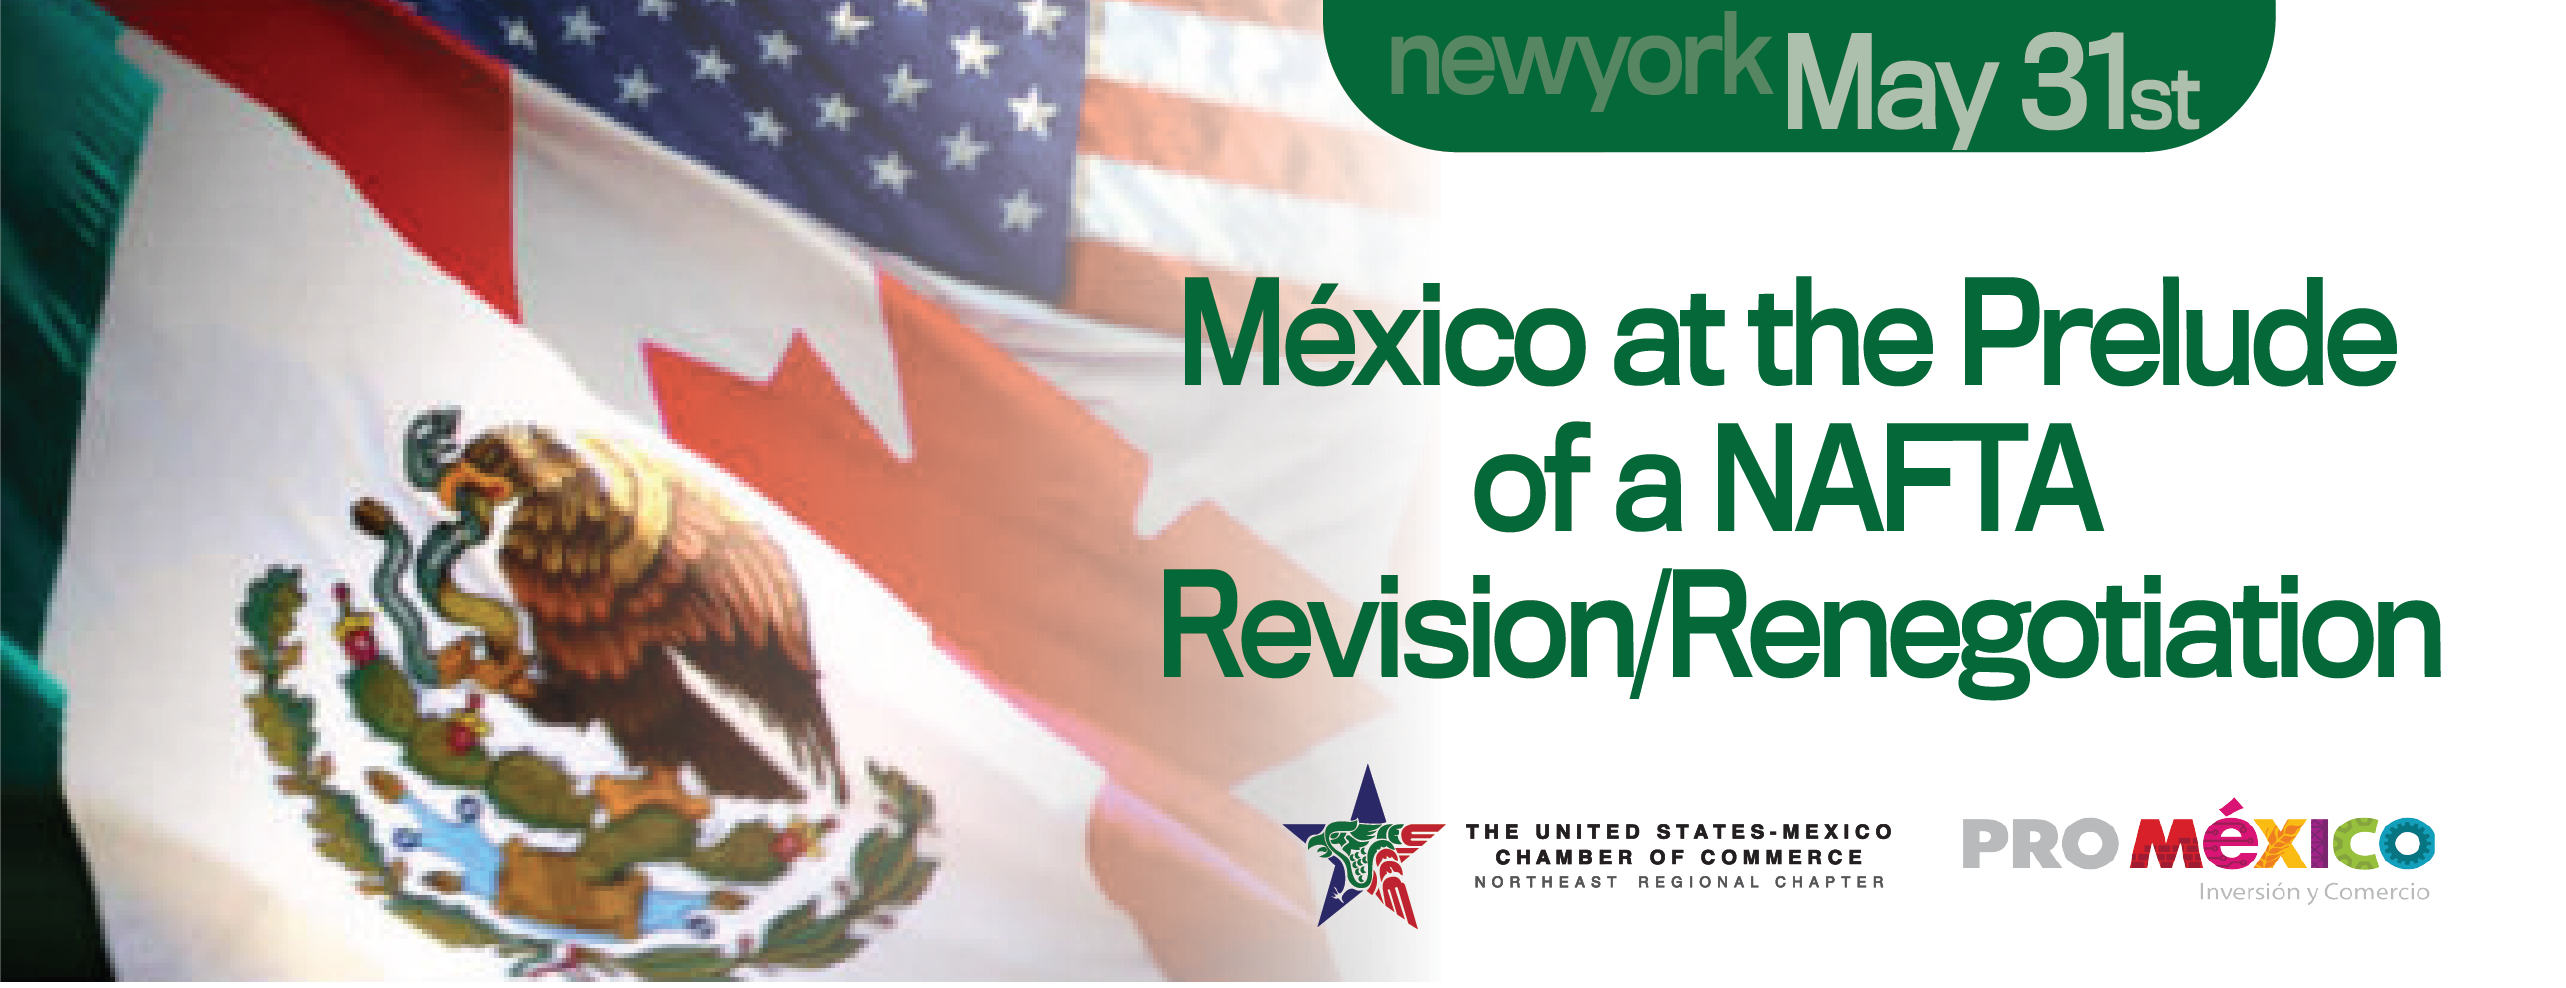 Mexico at the Prelude of a NAFTA Revision/Renegotiation